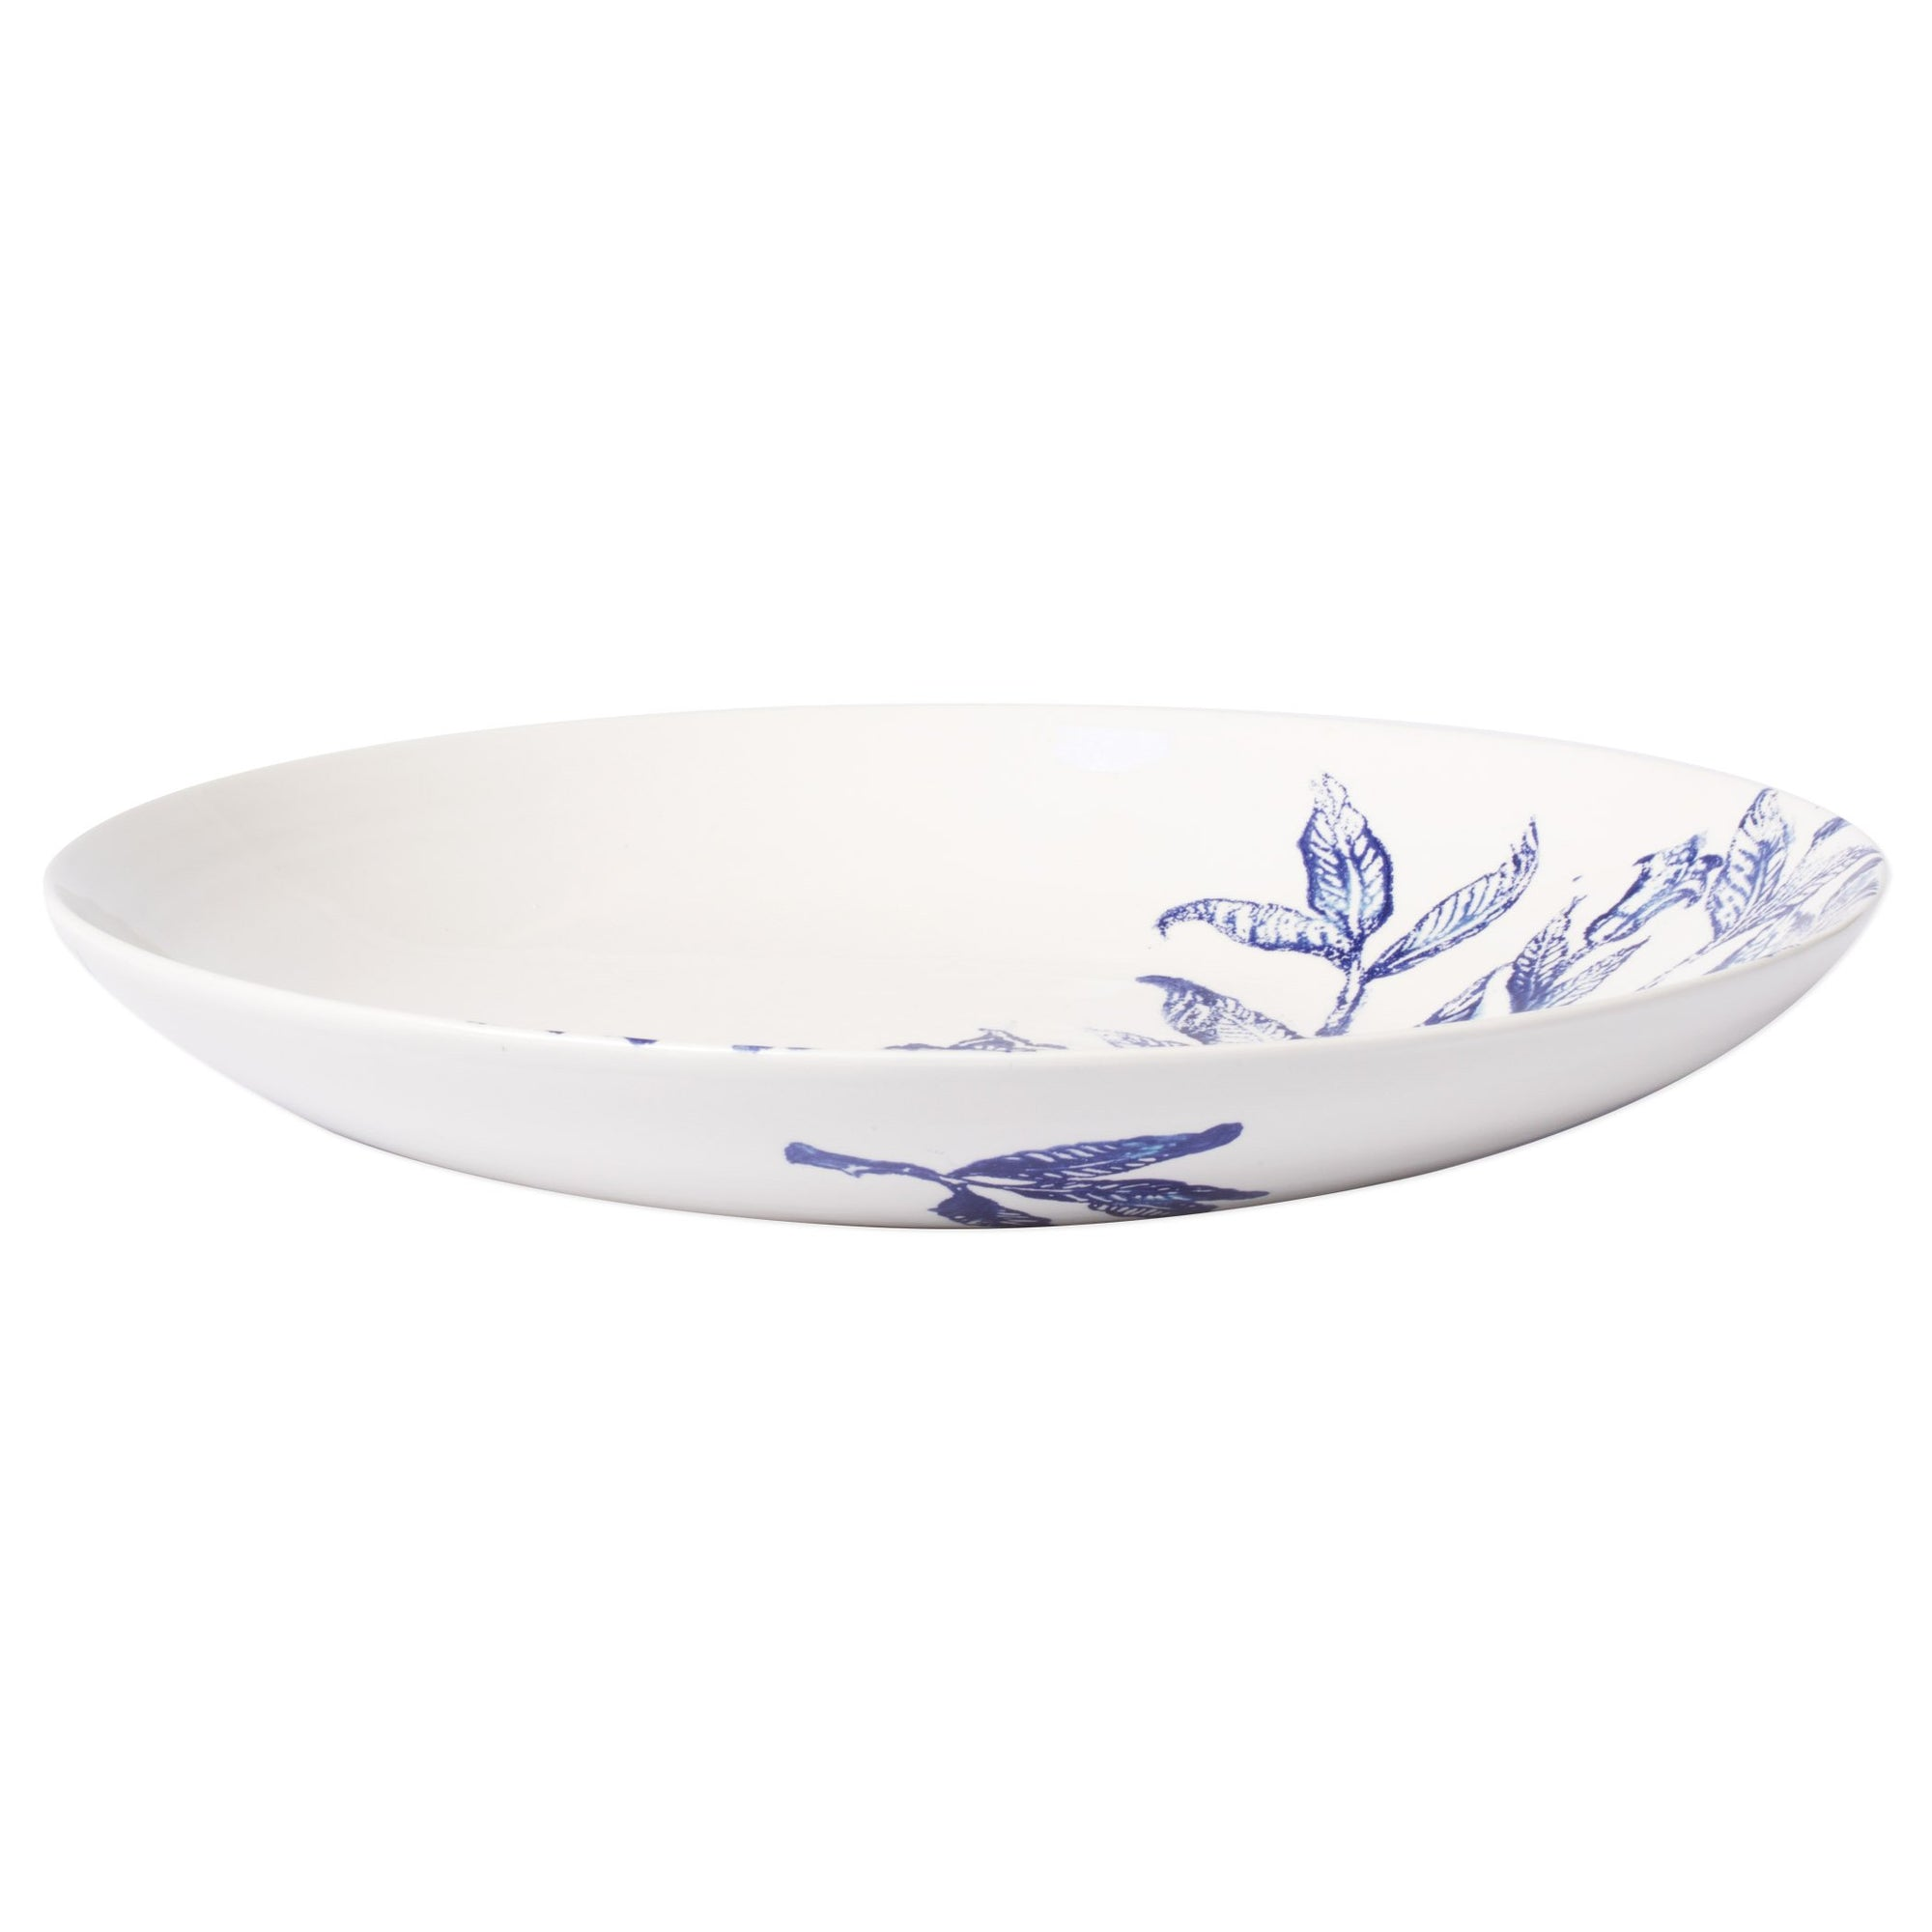 Melagrana Blu Large Serving Bowl by VIETRI